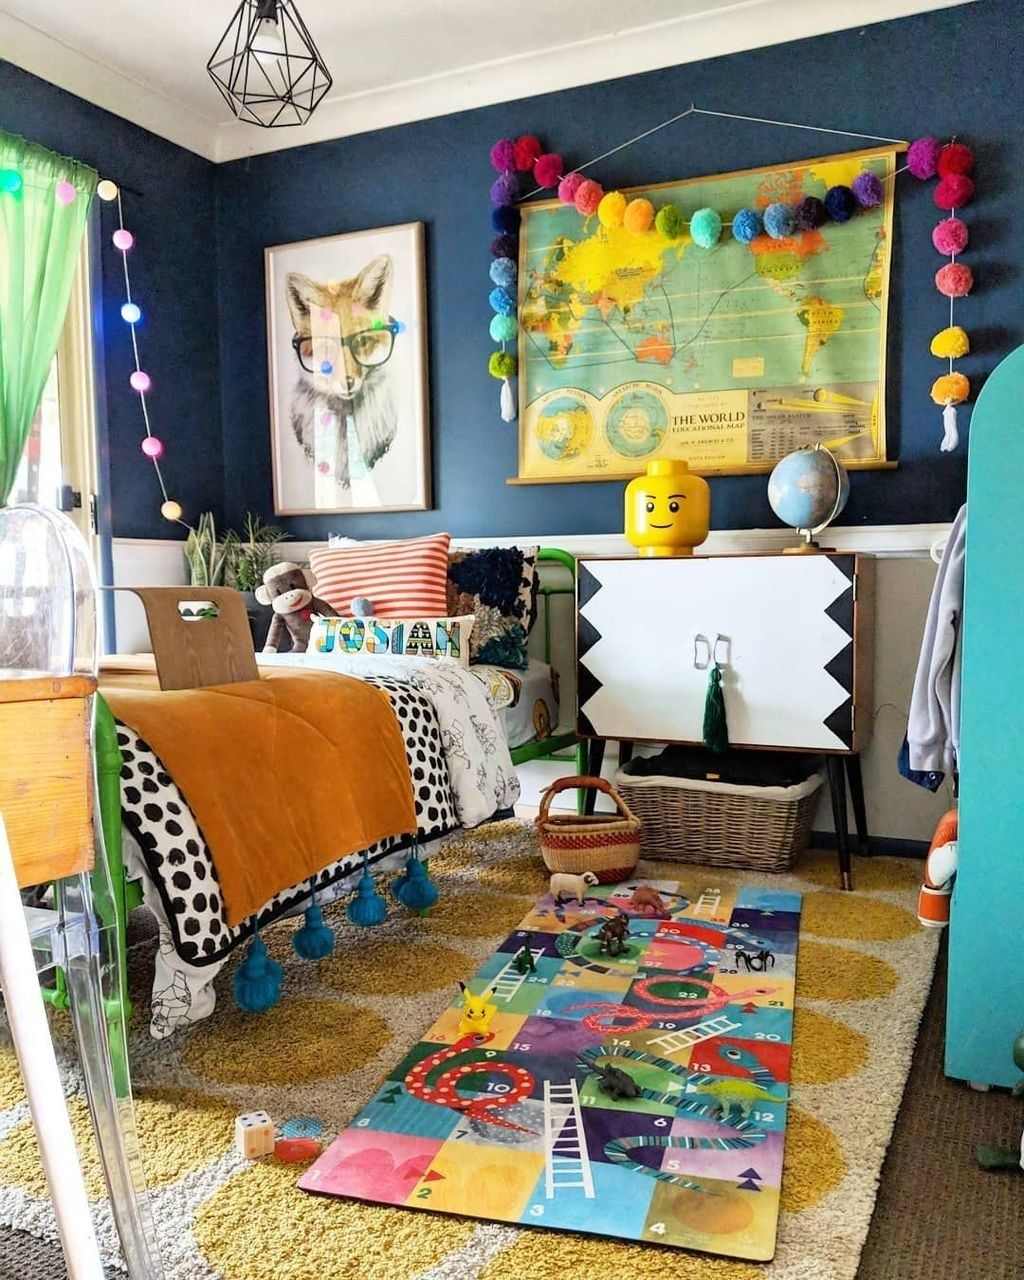 47 Amazing Imaginative Bedroom Decor Ideas For Your Kids Rooms